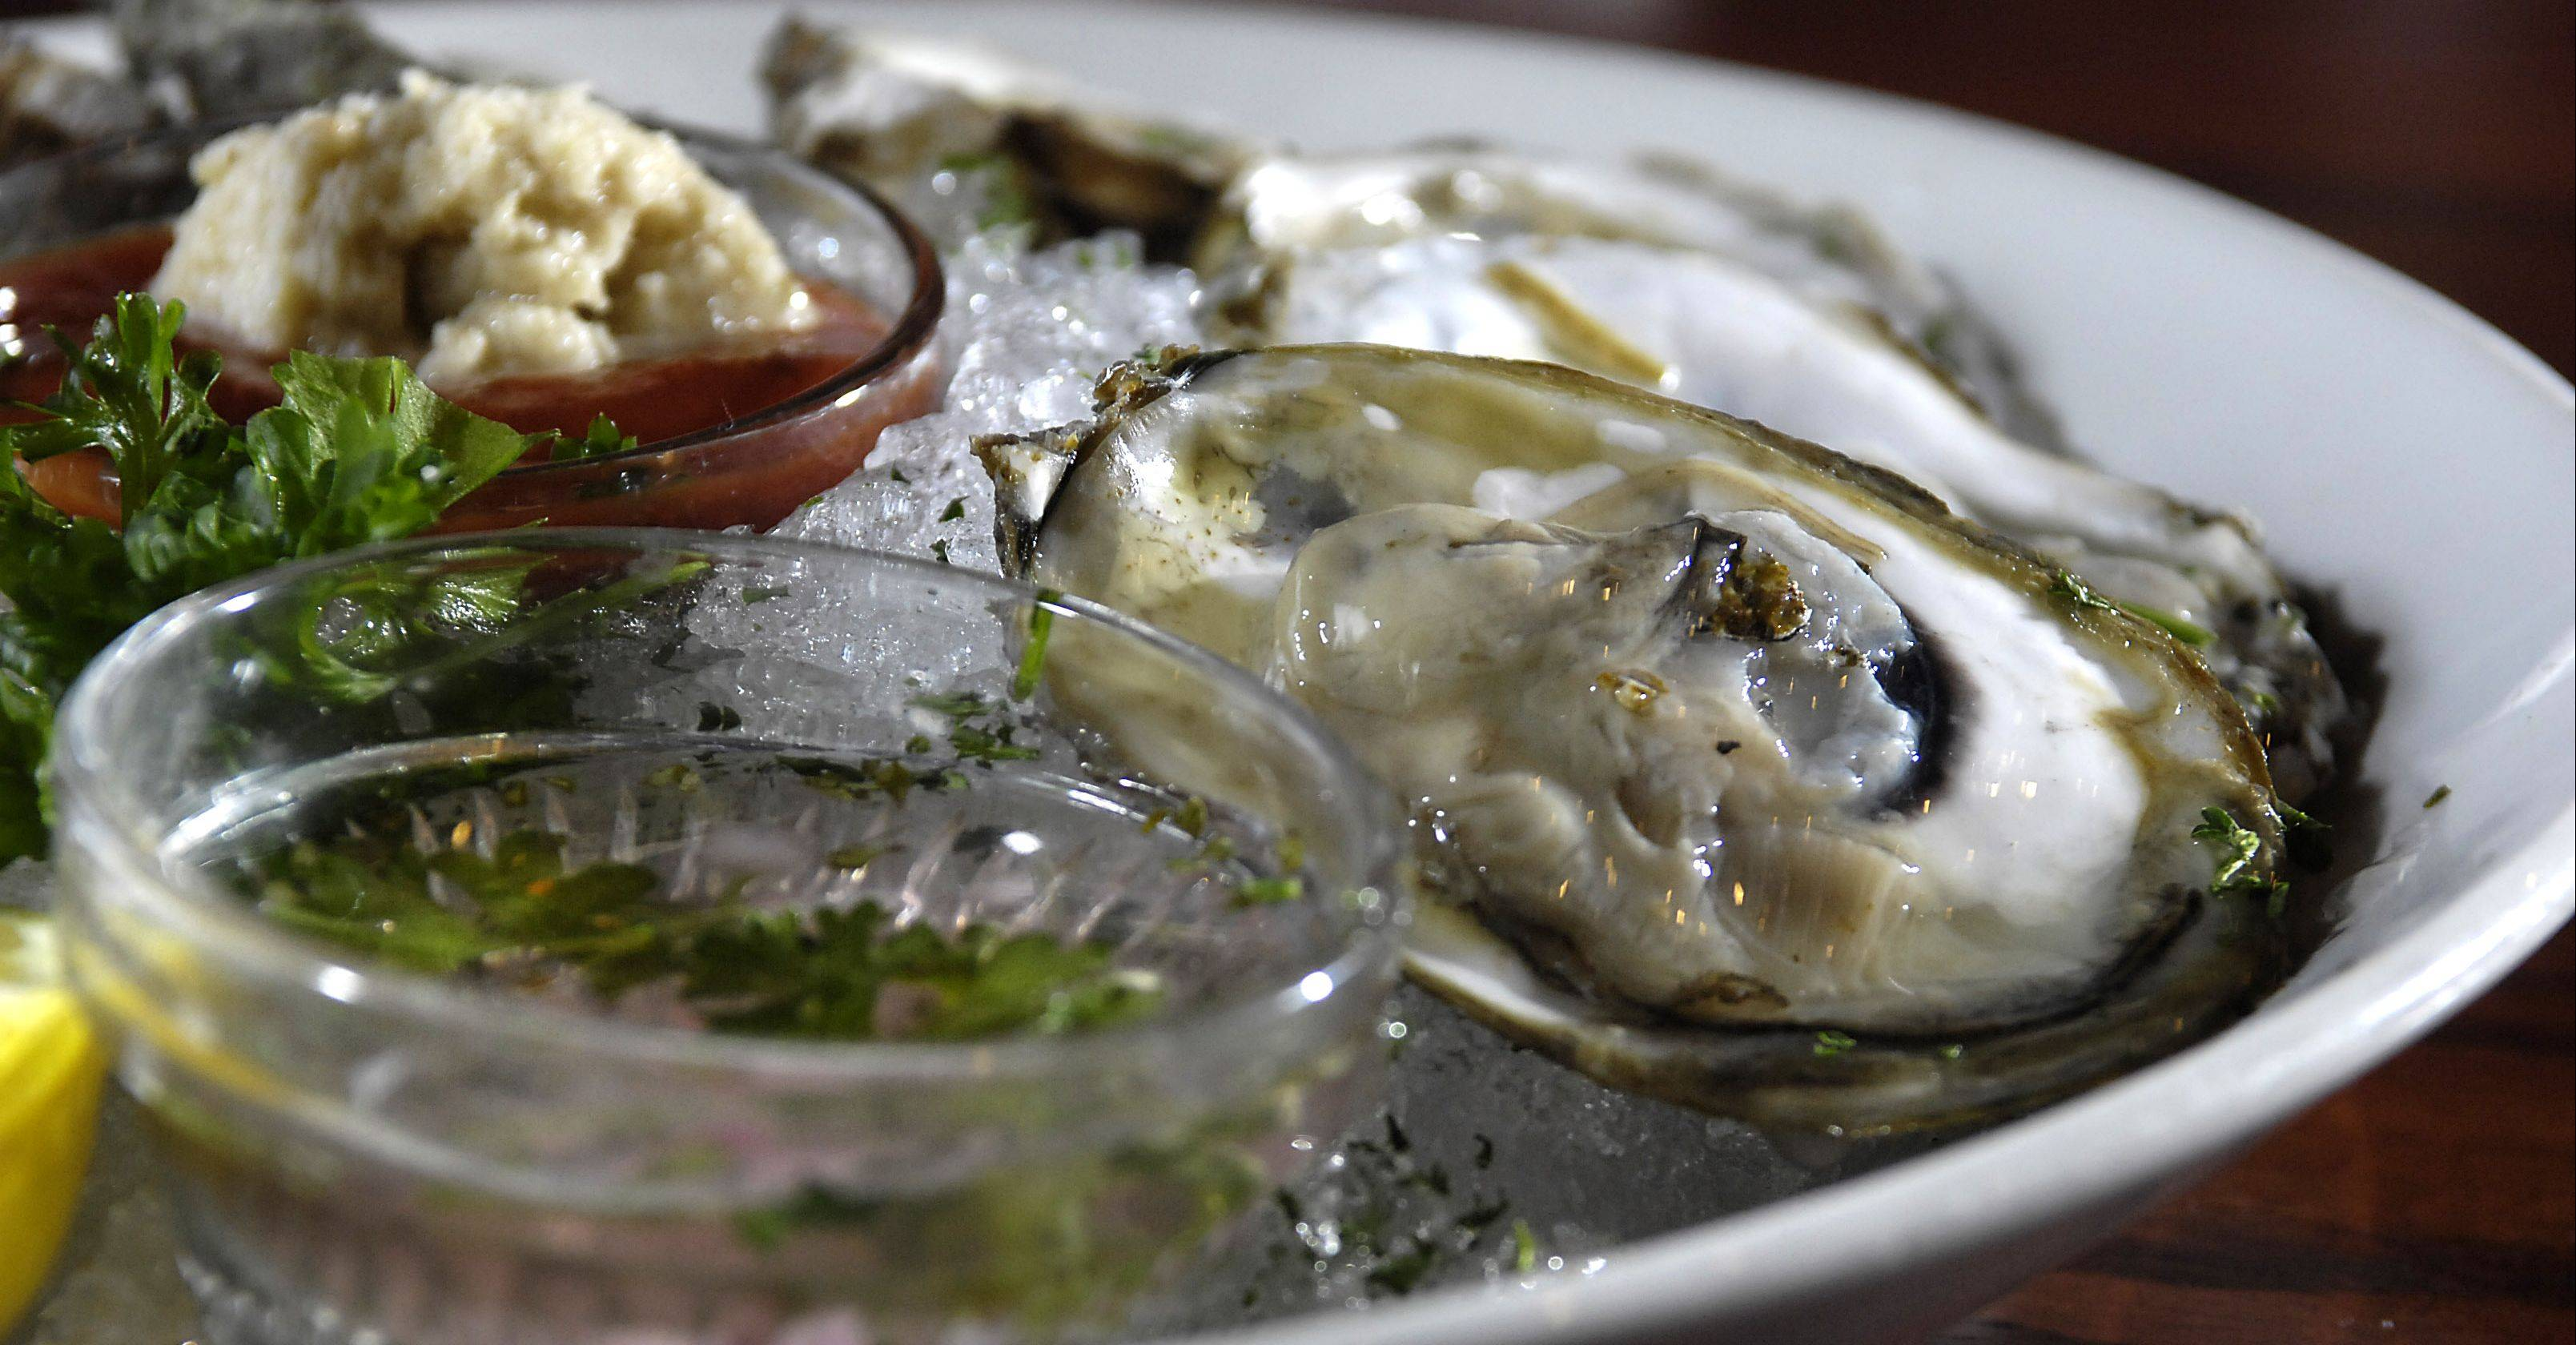 Chesapeake oyster farmers are jockeying for bragging rights about whose section of the Maryland bay produces the tastiest oysters and hope to build a following among chefs and diners.